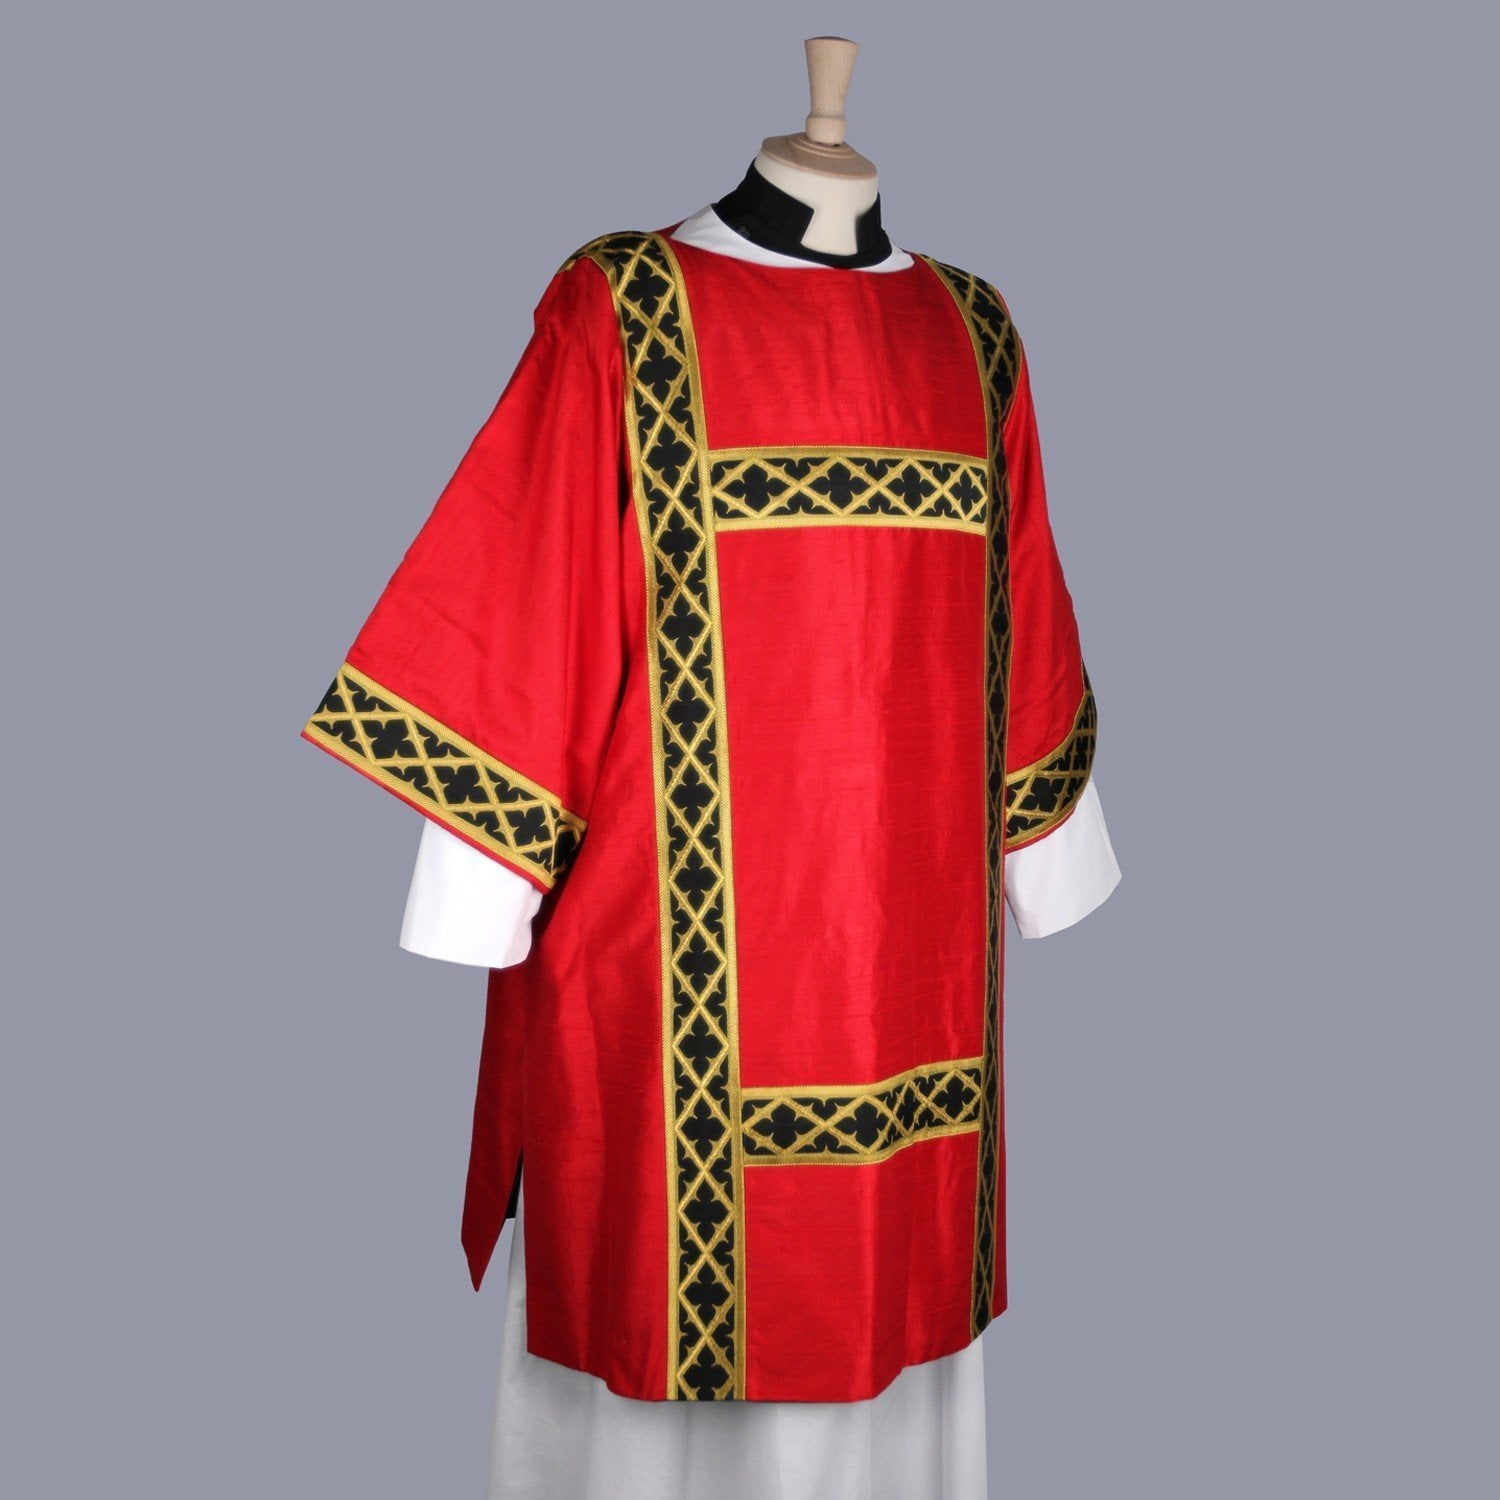 Gothic Dalmatic in Tartan Red Dupion Silk with Black/Gold Trellis Orphreys - Watts & Co. (international)